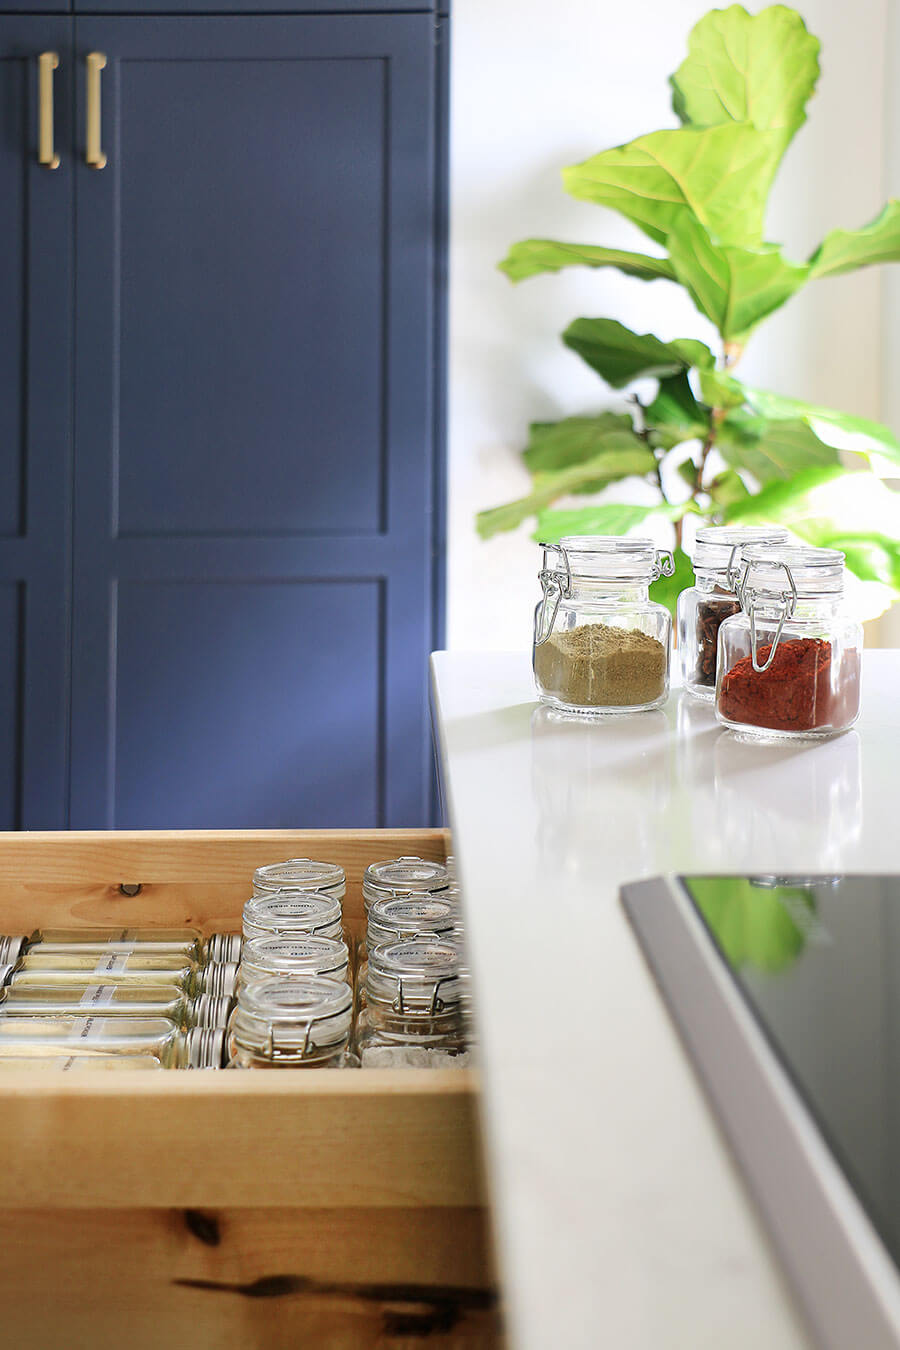 Mini-spice-containers-on-a-counter